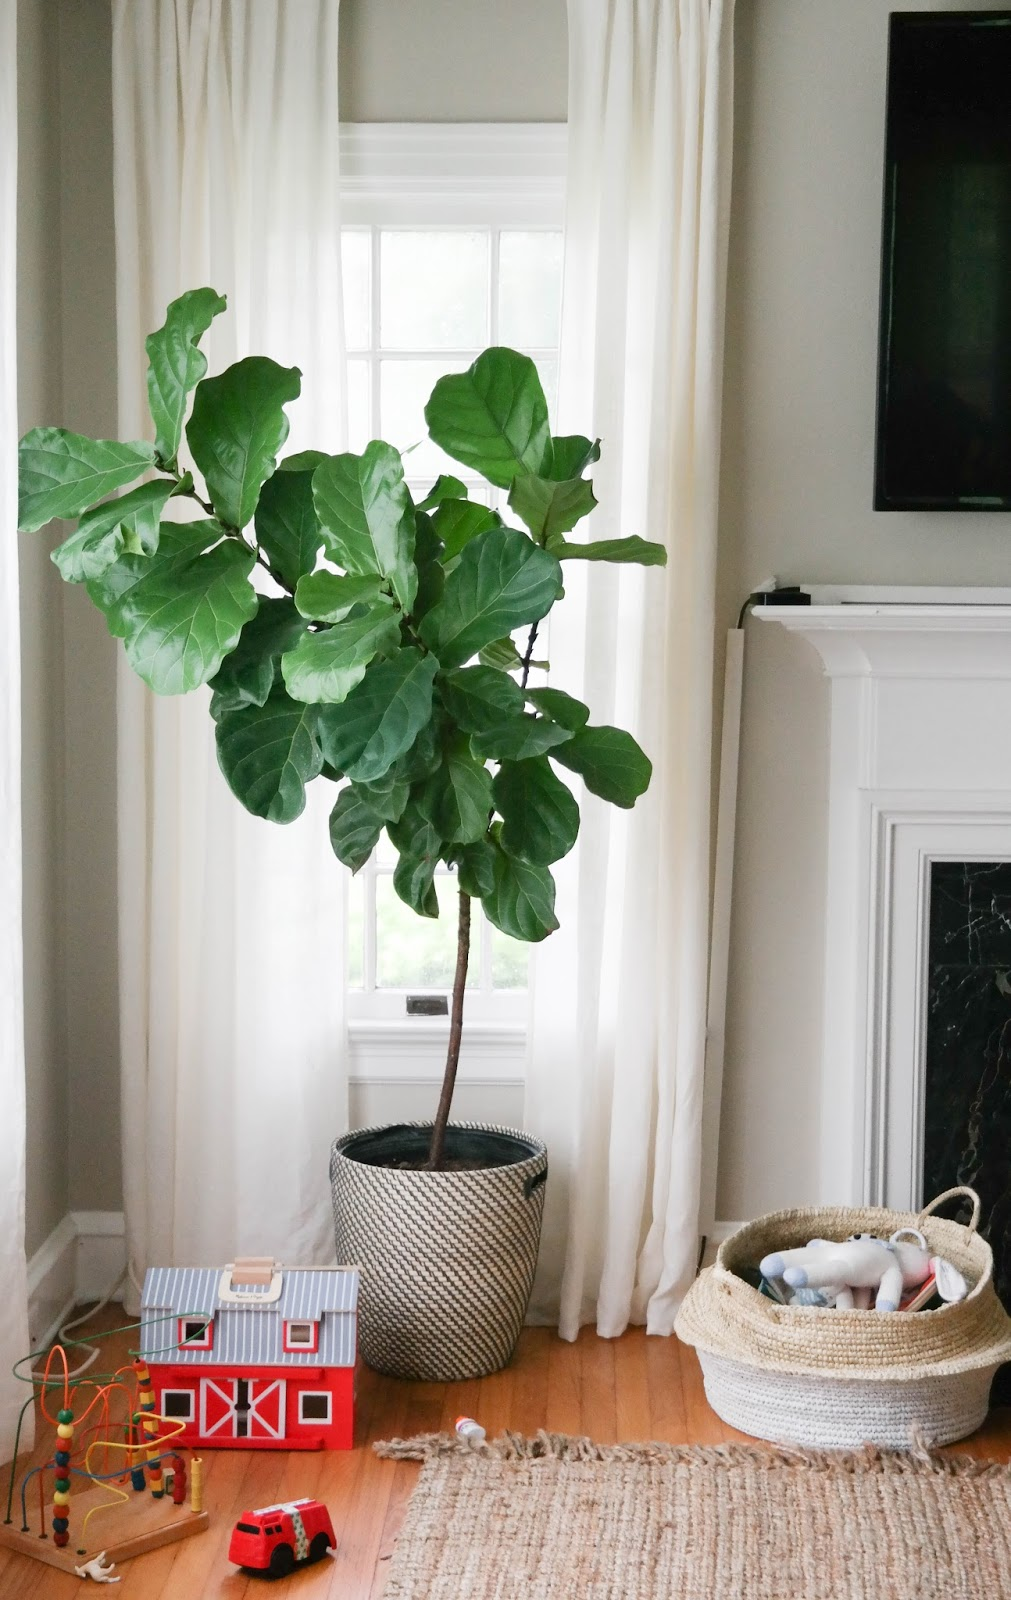 Wannabe Green Thumb: Our Fiddle Leaf Fig Trees